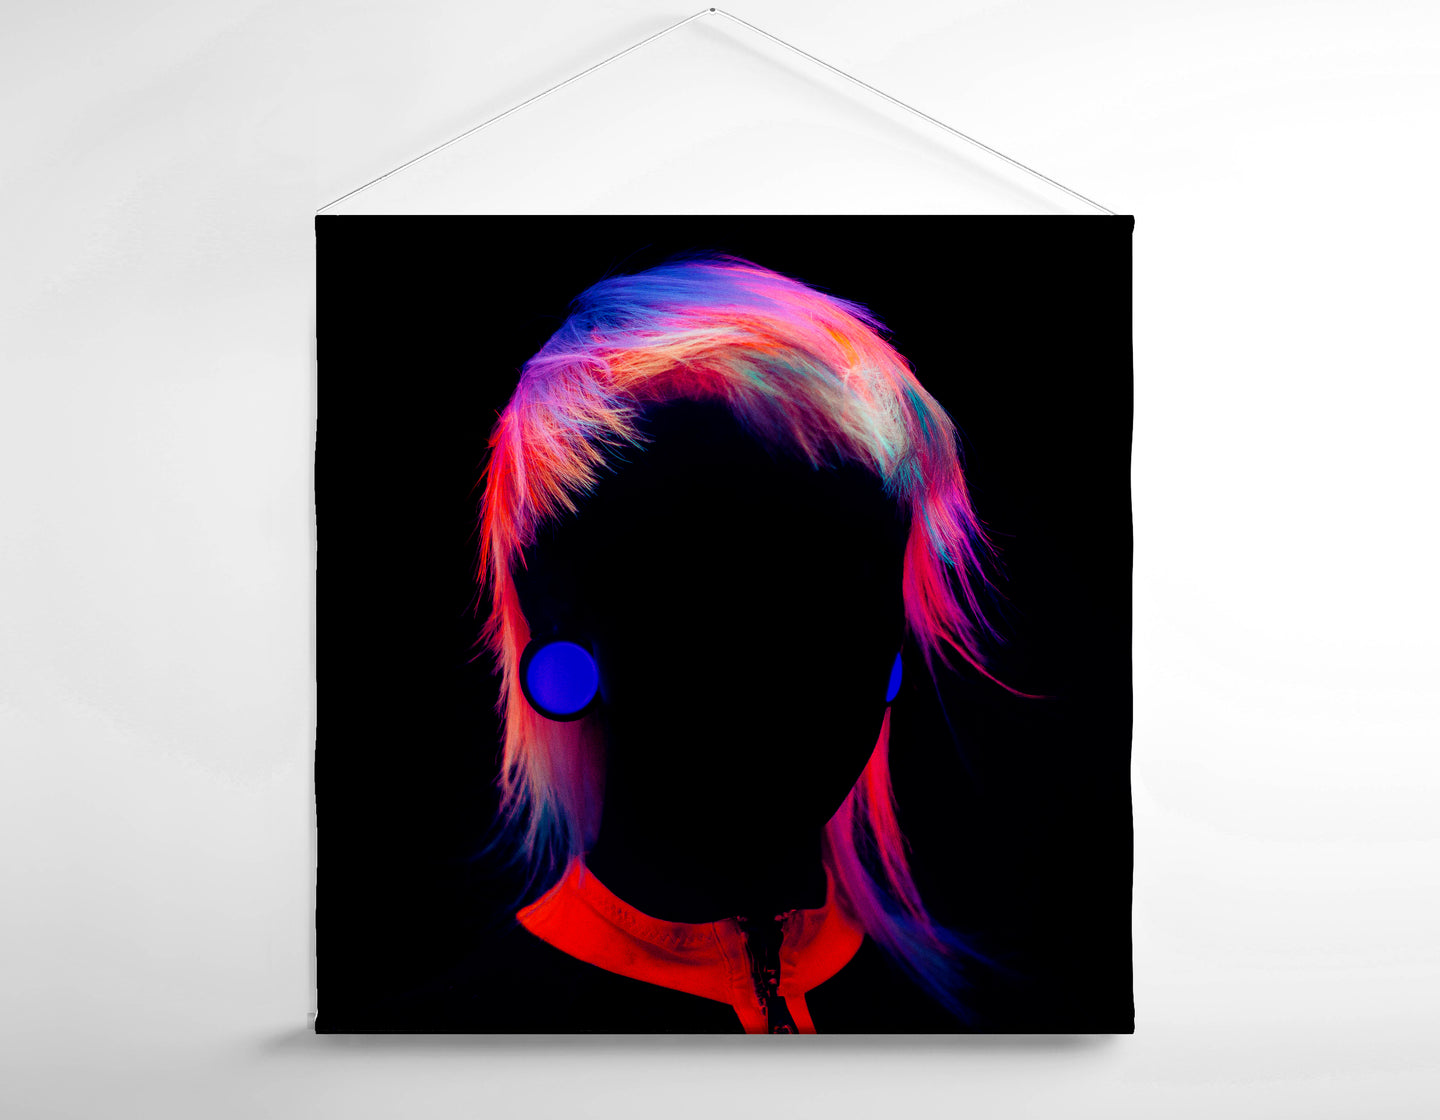 Salon Banner - Bob with Neon Colored Hairstyle in Silhouette